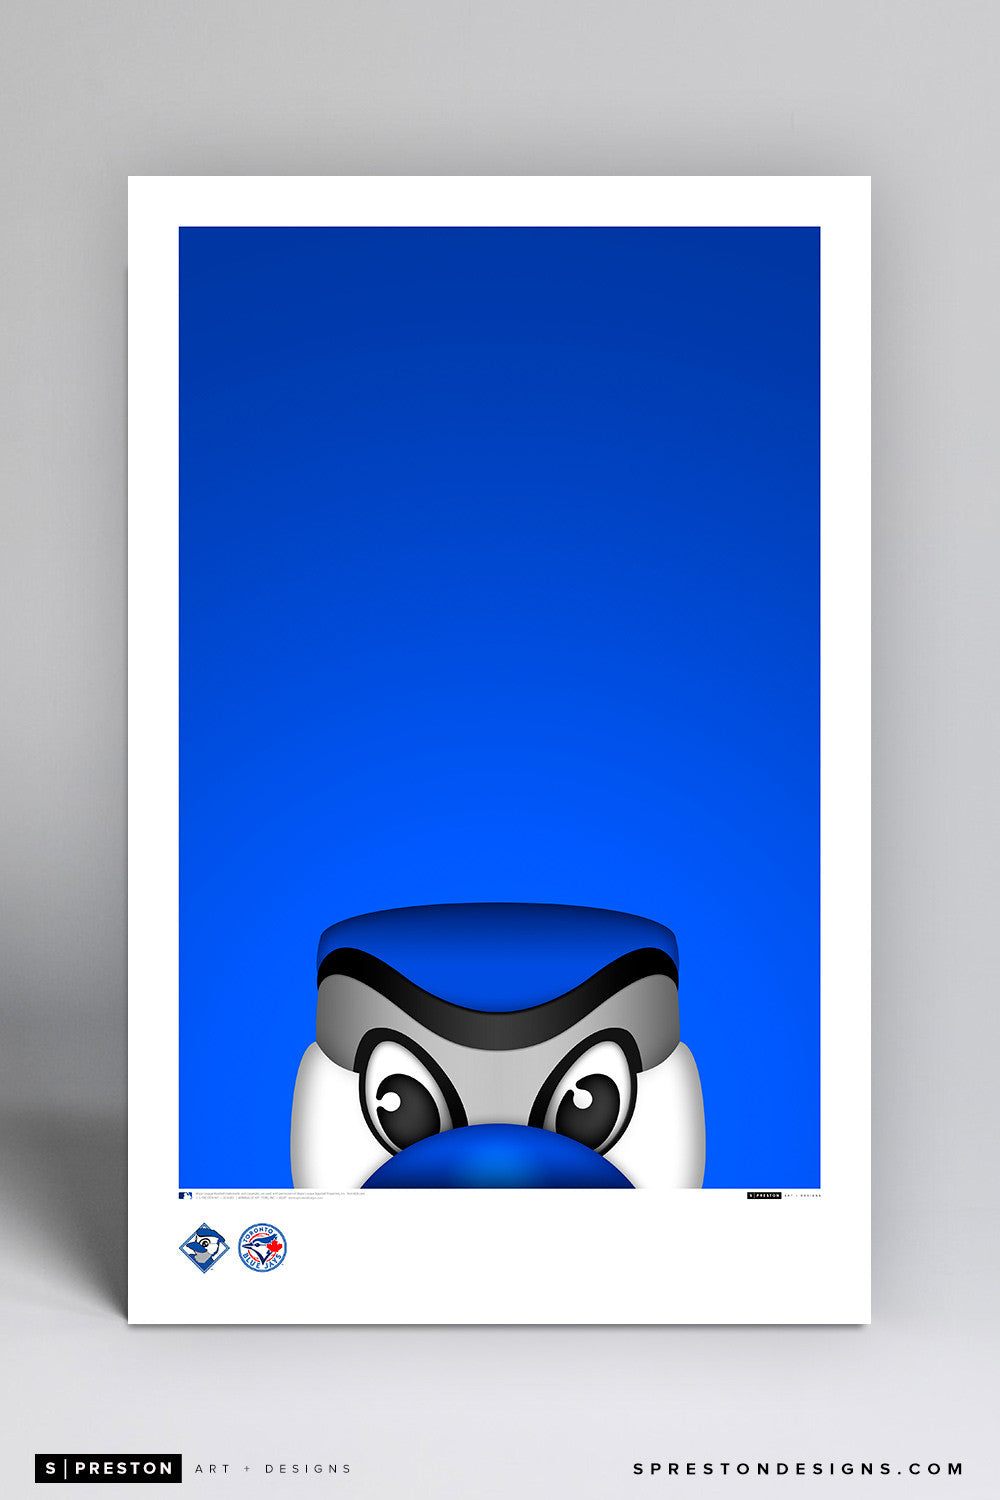 Minimalist Ace Art Poster Art Poster - Toronto Blue Jays - S. Preston Art + Designs